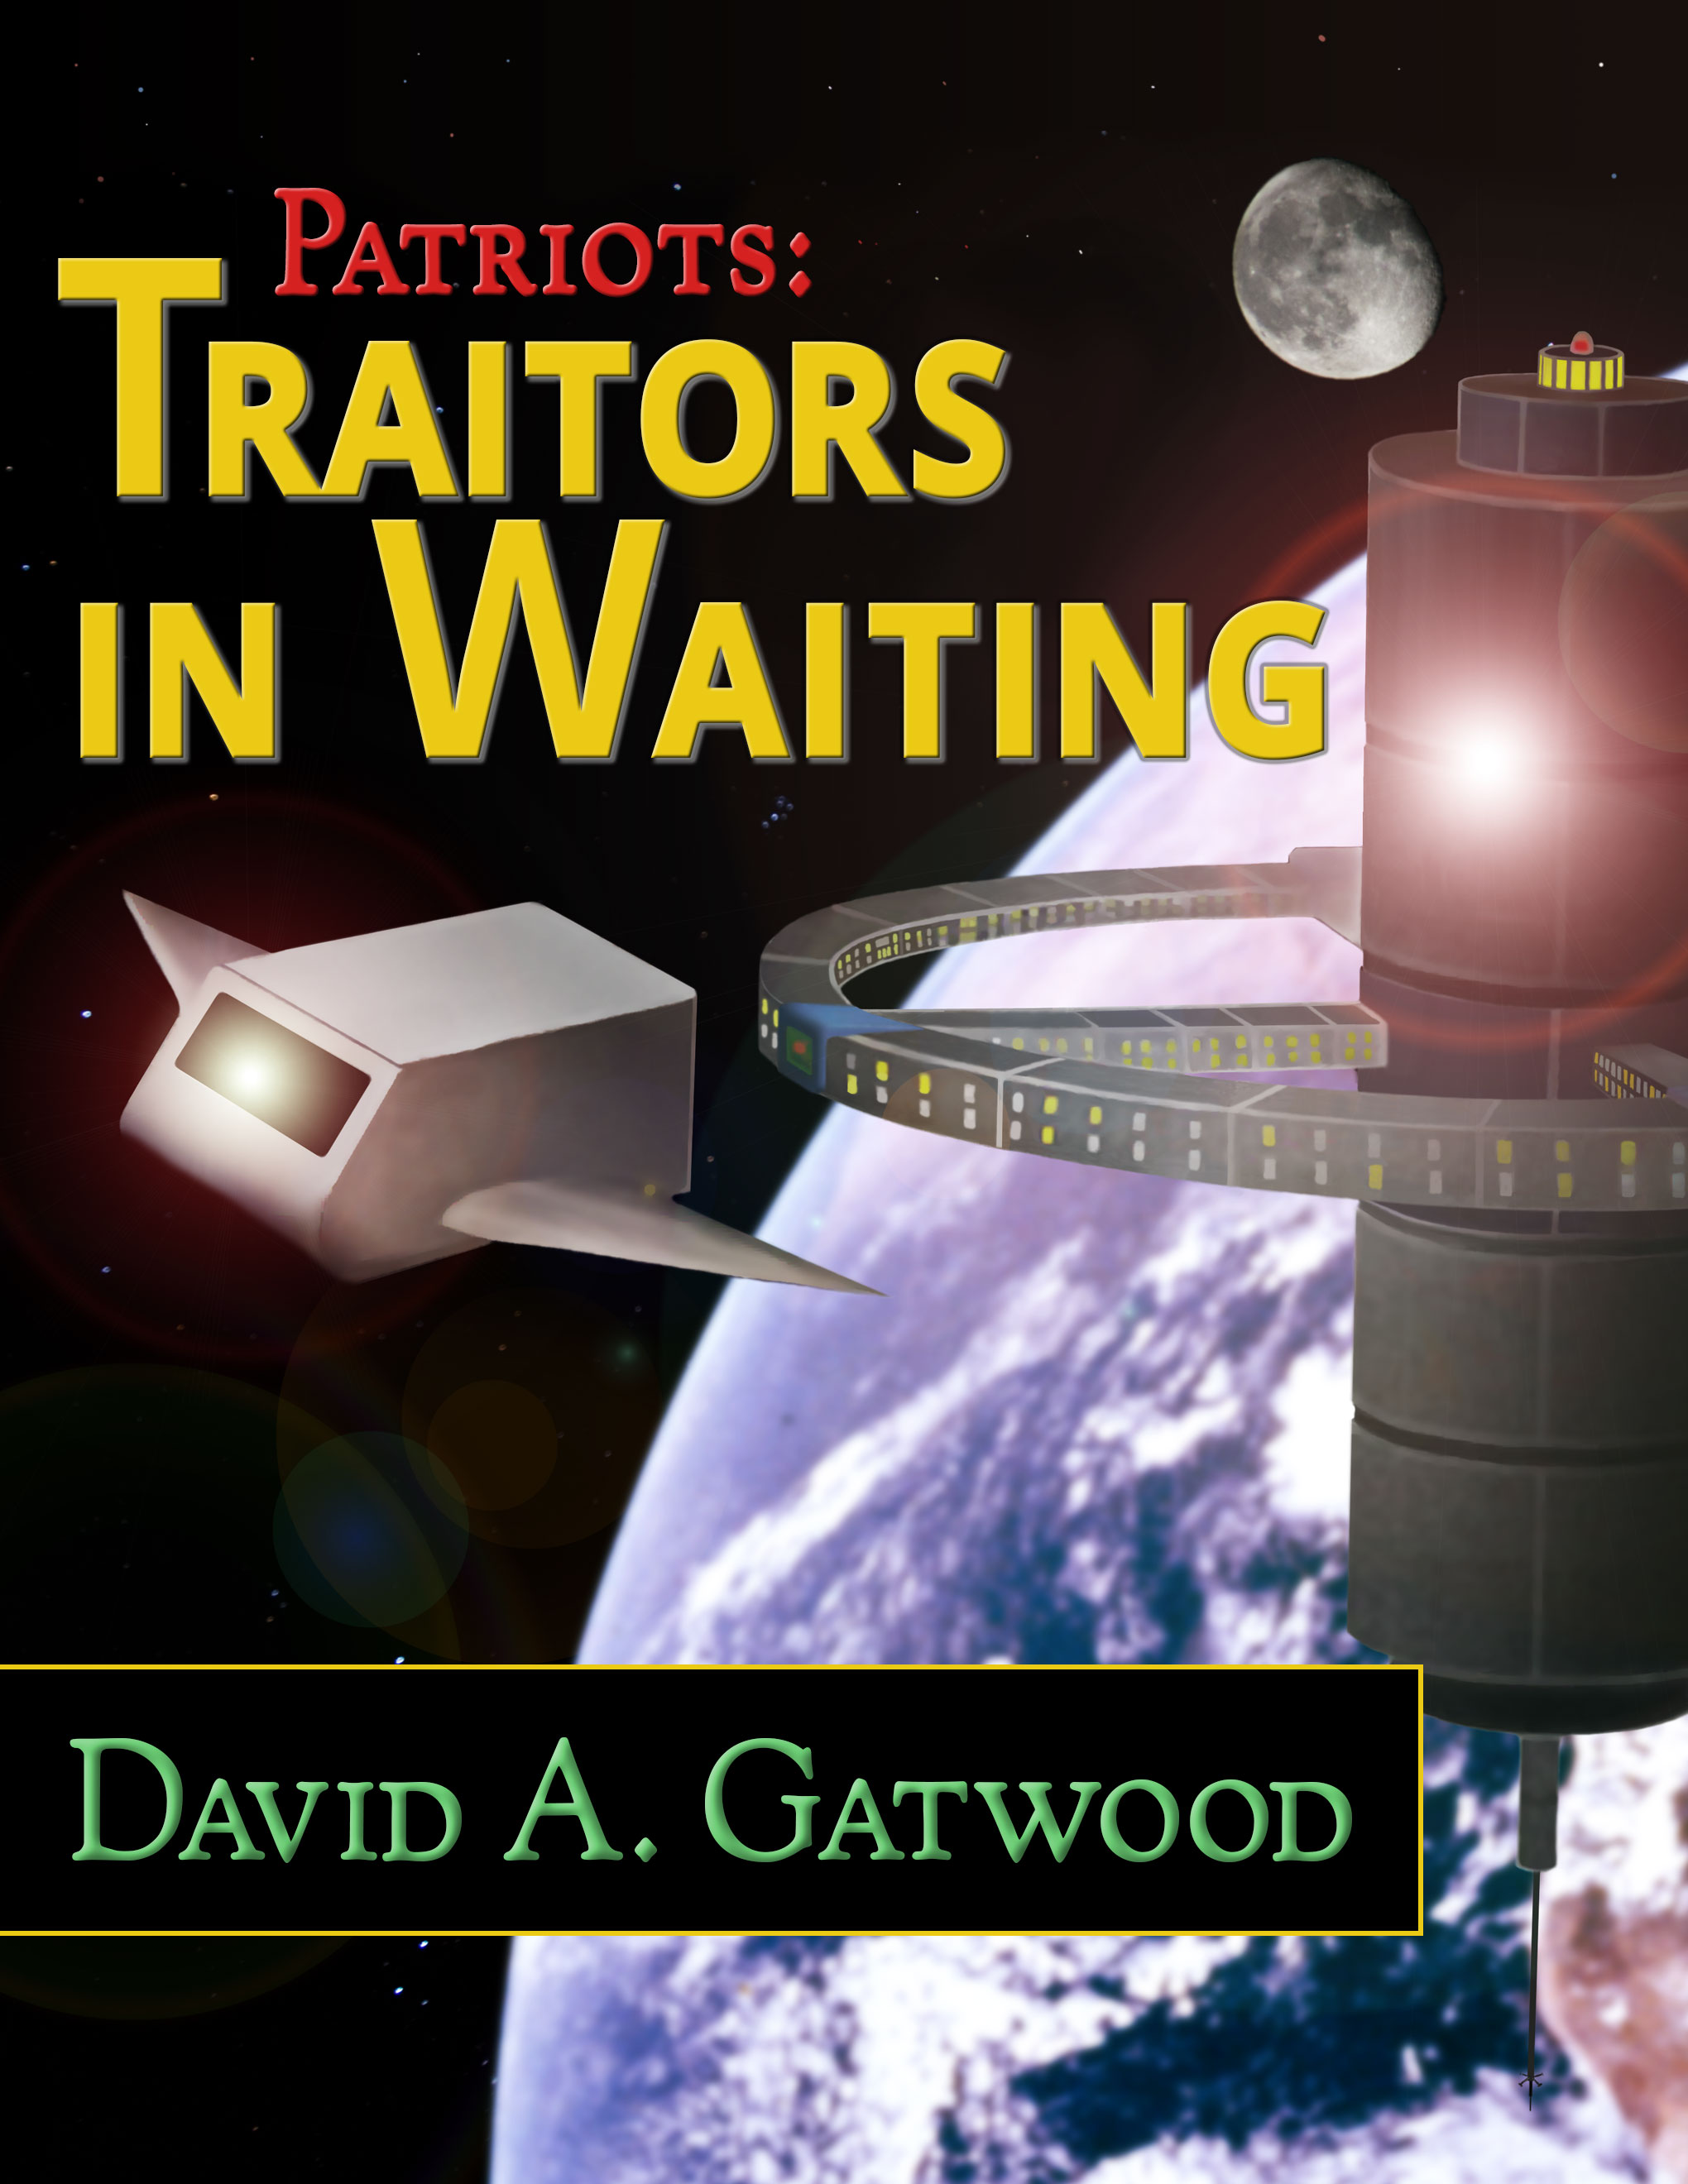 Cover art image for Traitors in Waiting